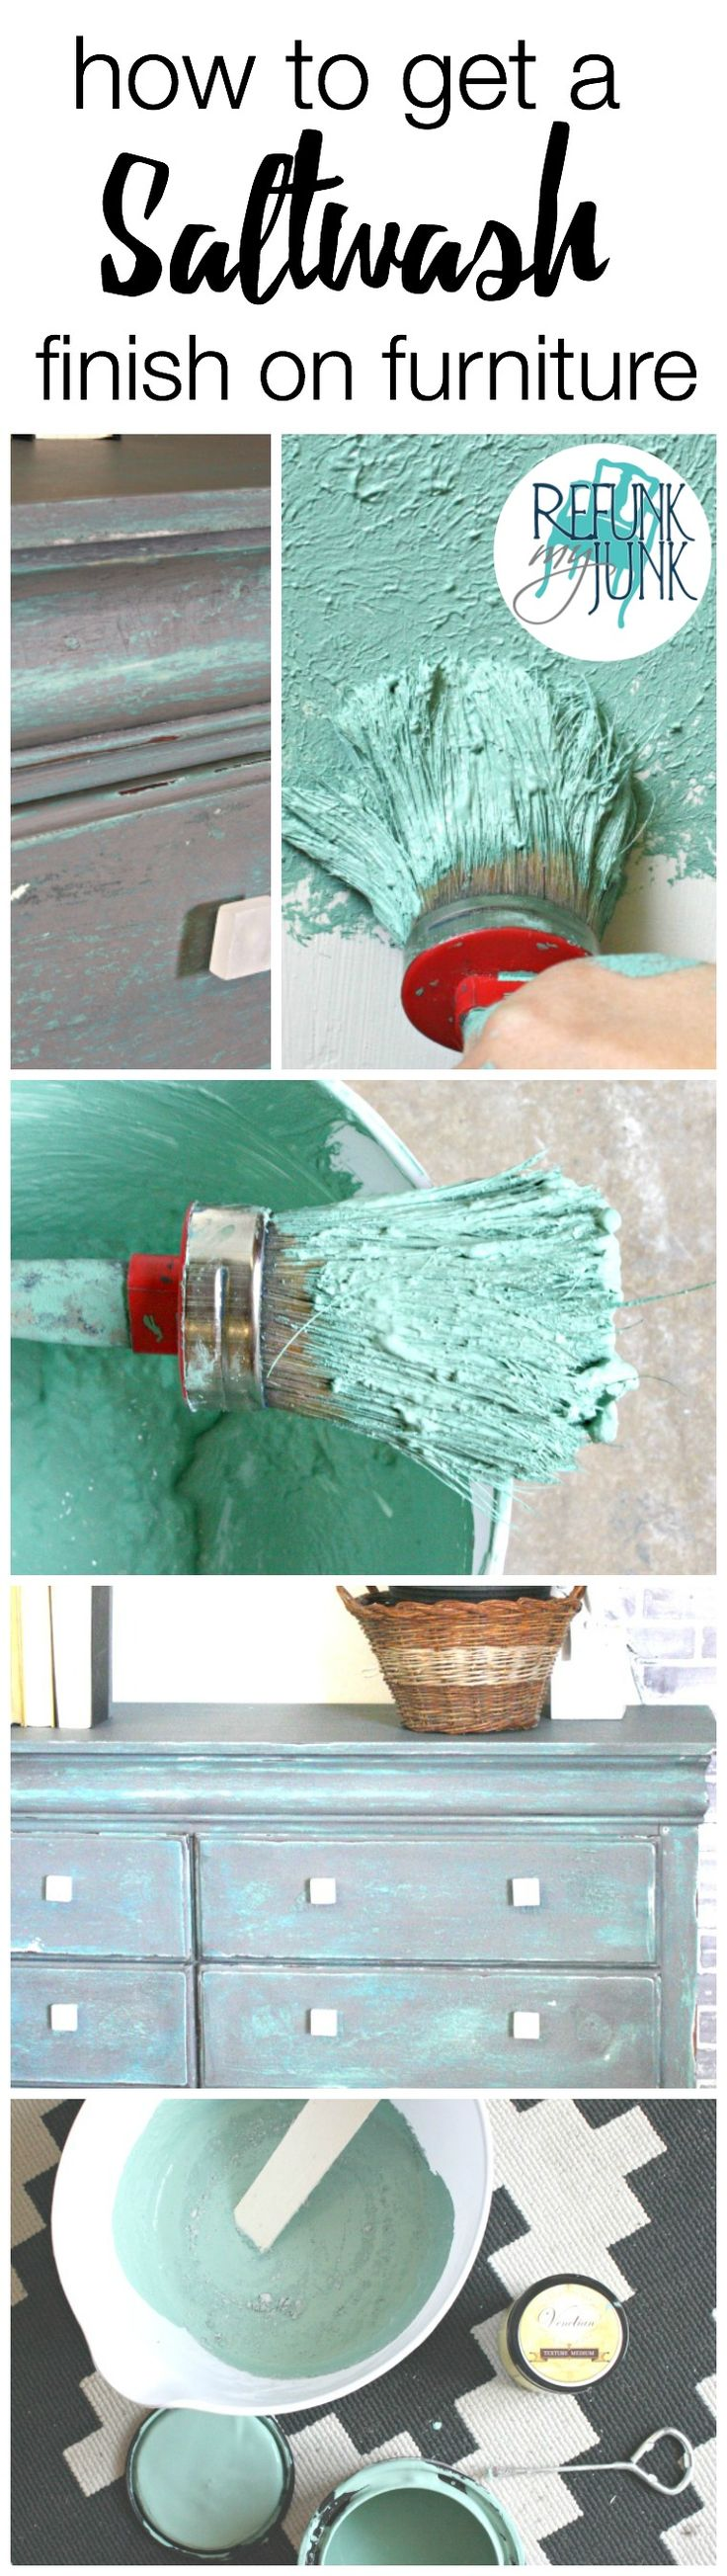 Salt Wash Finish on Furniture - Refunk My Junk - DIY Furniture Finish Tutorial  - How to Paint Furniture with a coastal look